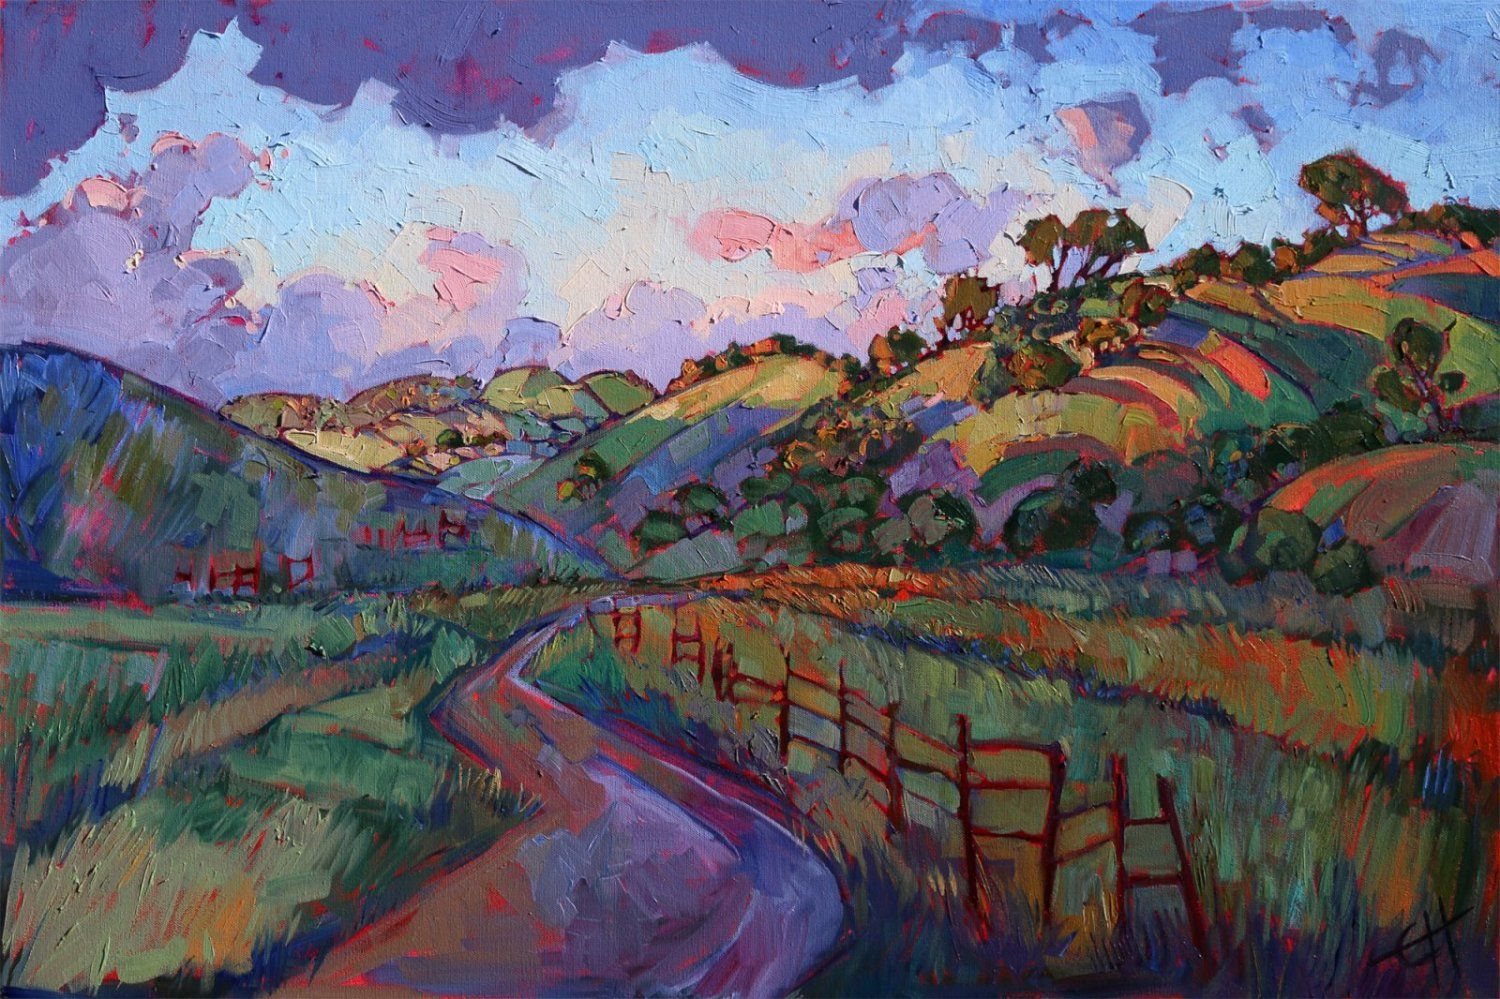 Sunset Hills Original Oil Painting By Erin Hanson Landscape Paintings Original Oil Painting Oil Painting Landscape